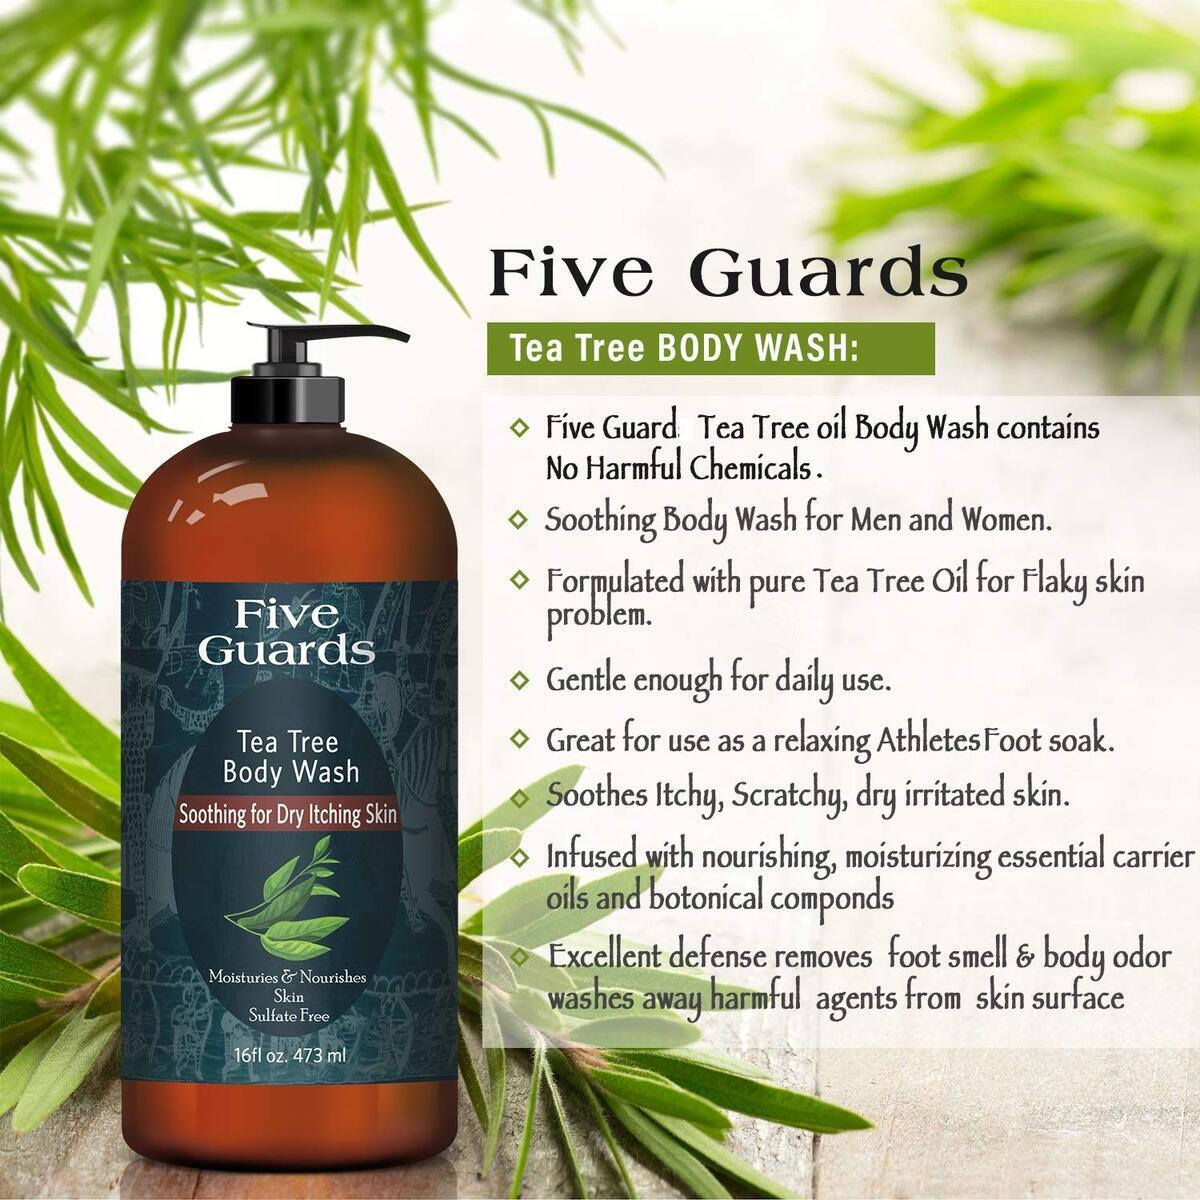 FIVE GUARDS Tea Tree Oil Body Wash W/Mint Removes Body Odor, Athlete's Foot, Jock Itch, Skin Irritations Botanical Shower Gel Soap Women & Men W/Oregano, Rosemary, Cinnamon oil - 16 fl oz